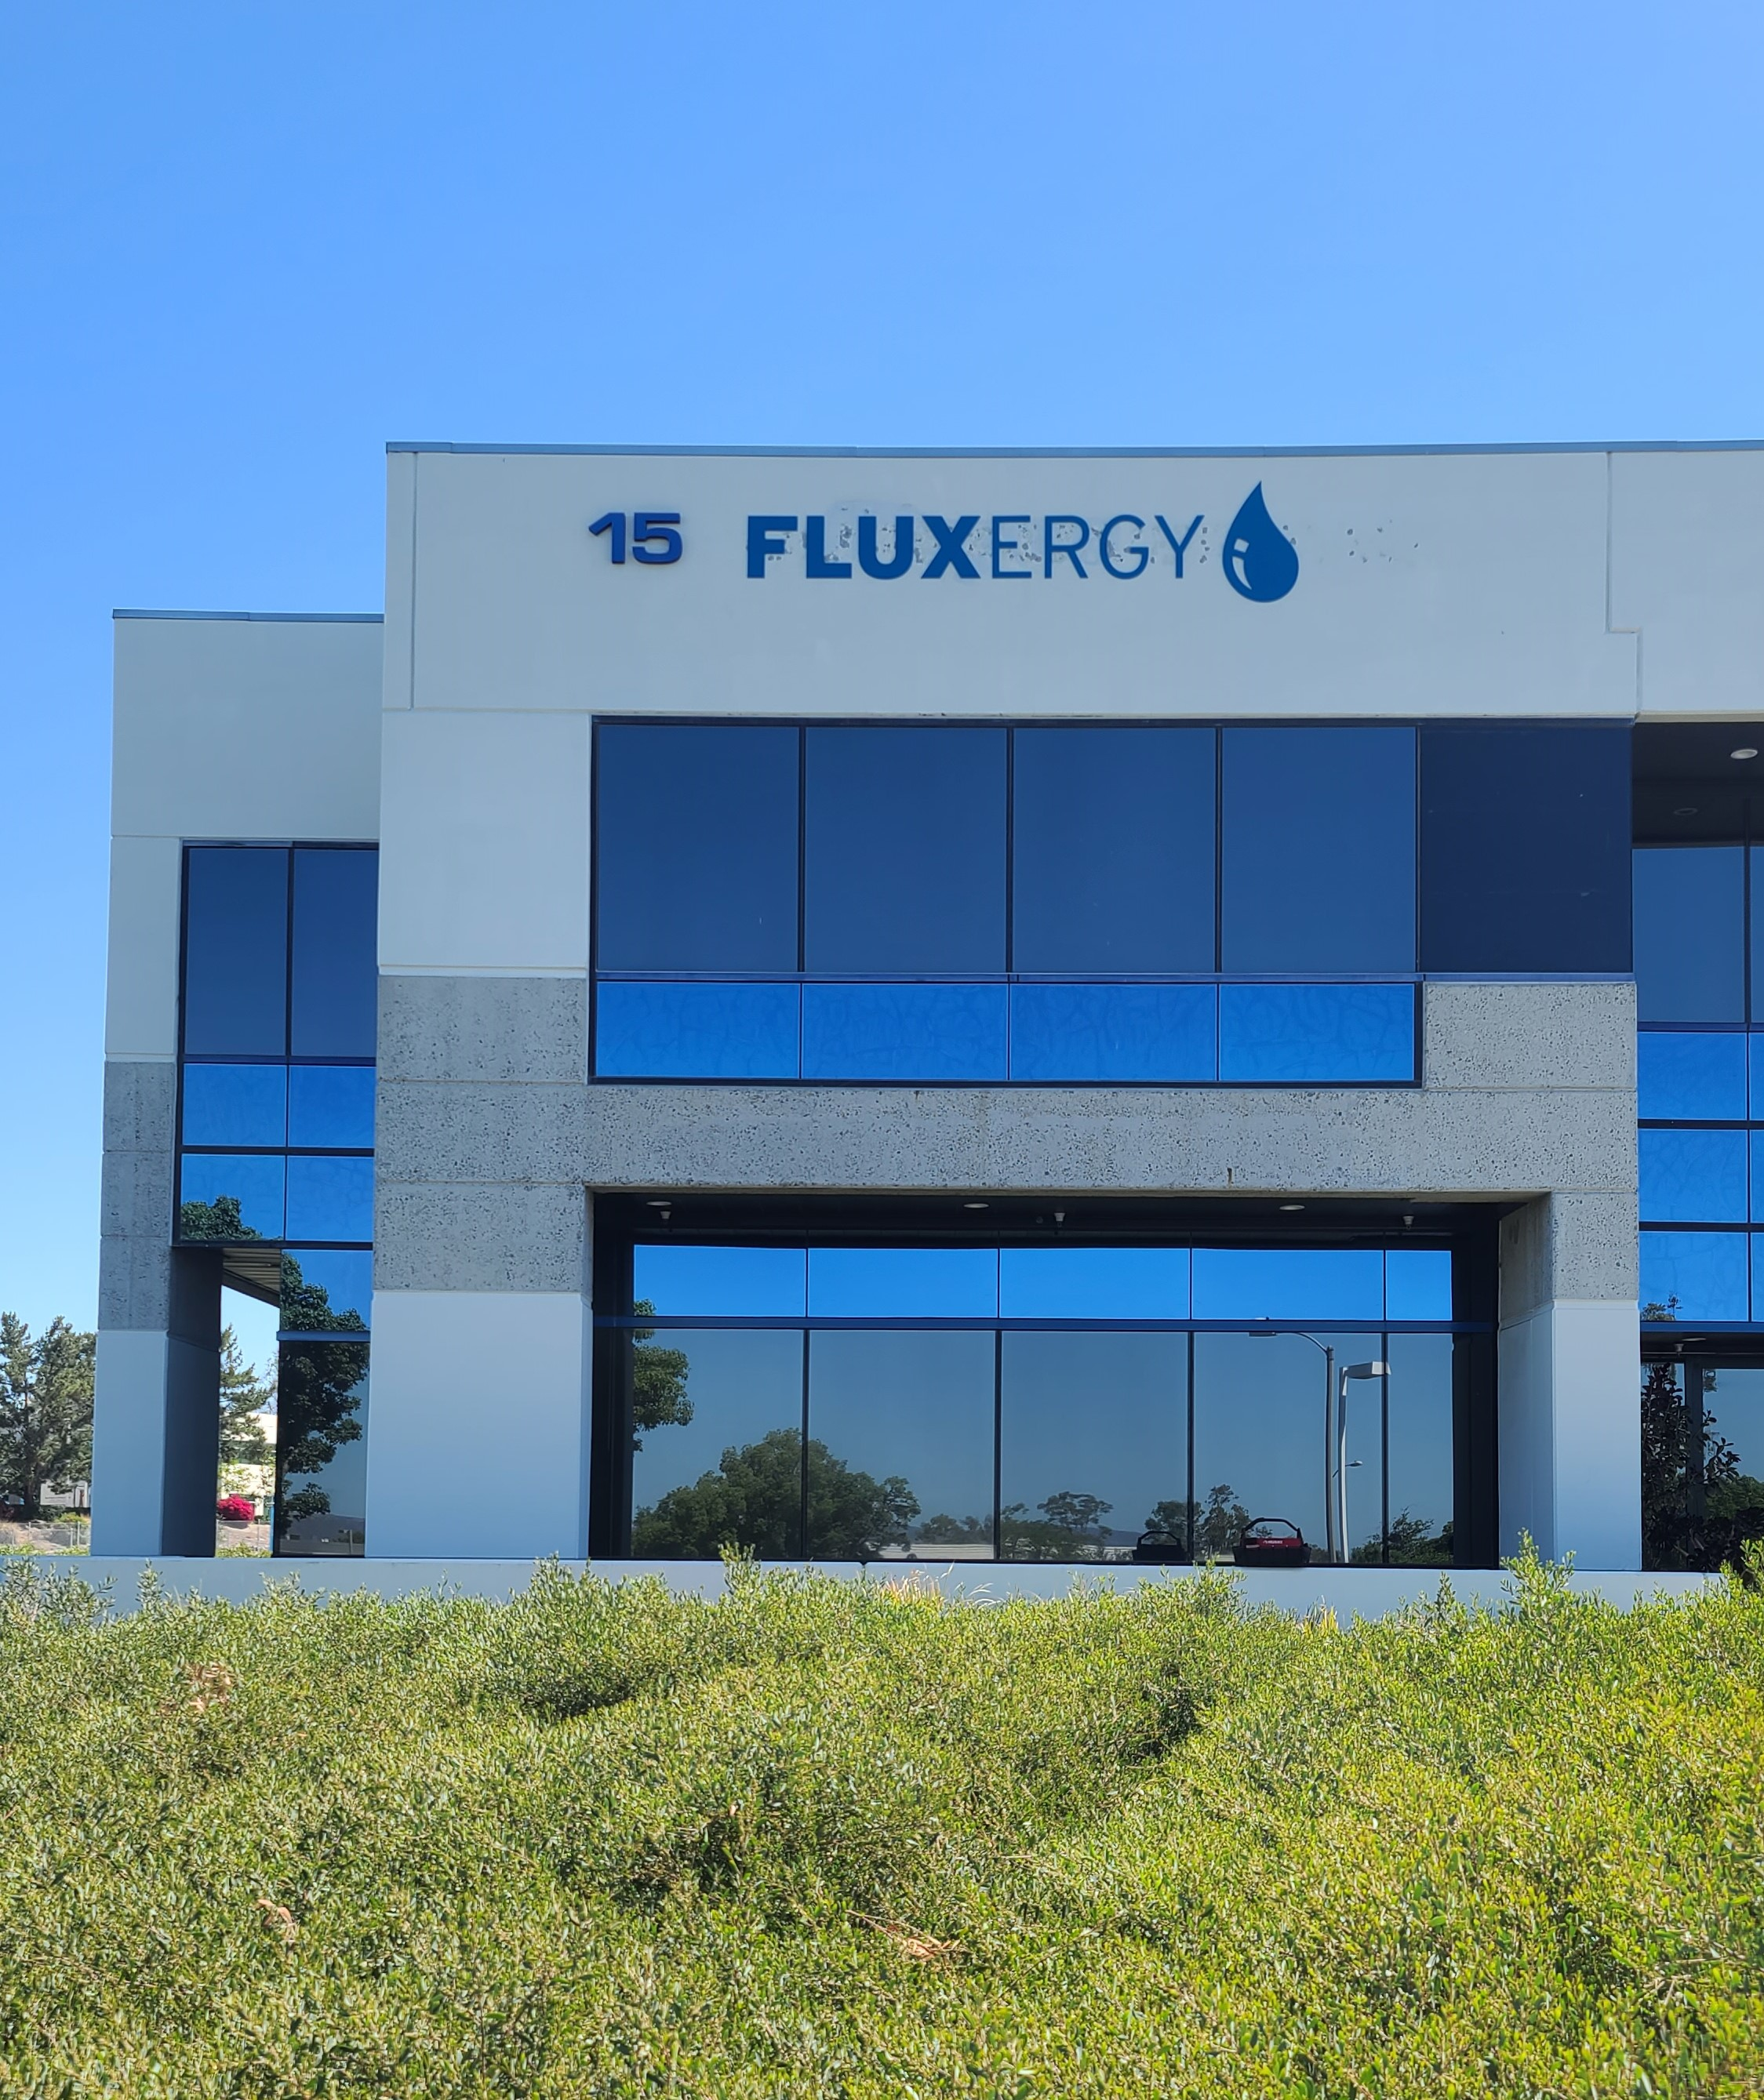 These are the exterior dimensional letter sign sets we fabricated and installed for Fluxergy as part of a sign package for their Irvine building.